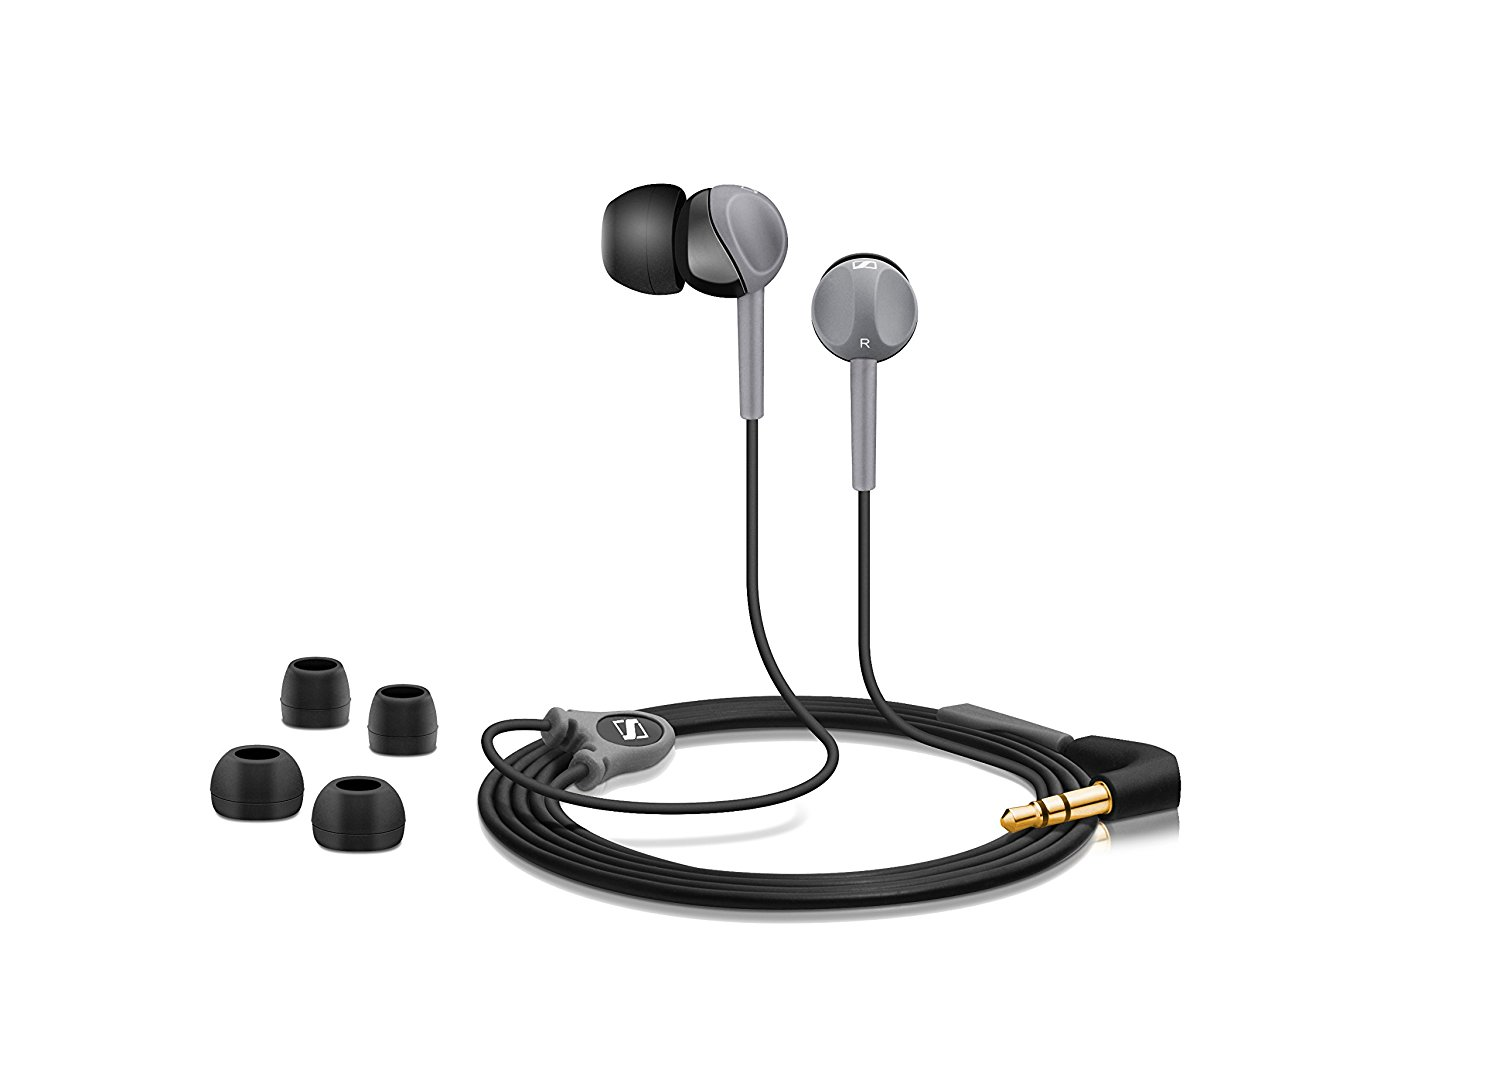 Sennheiser Cx 180 Street Ii In Ear Headphone Black